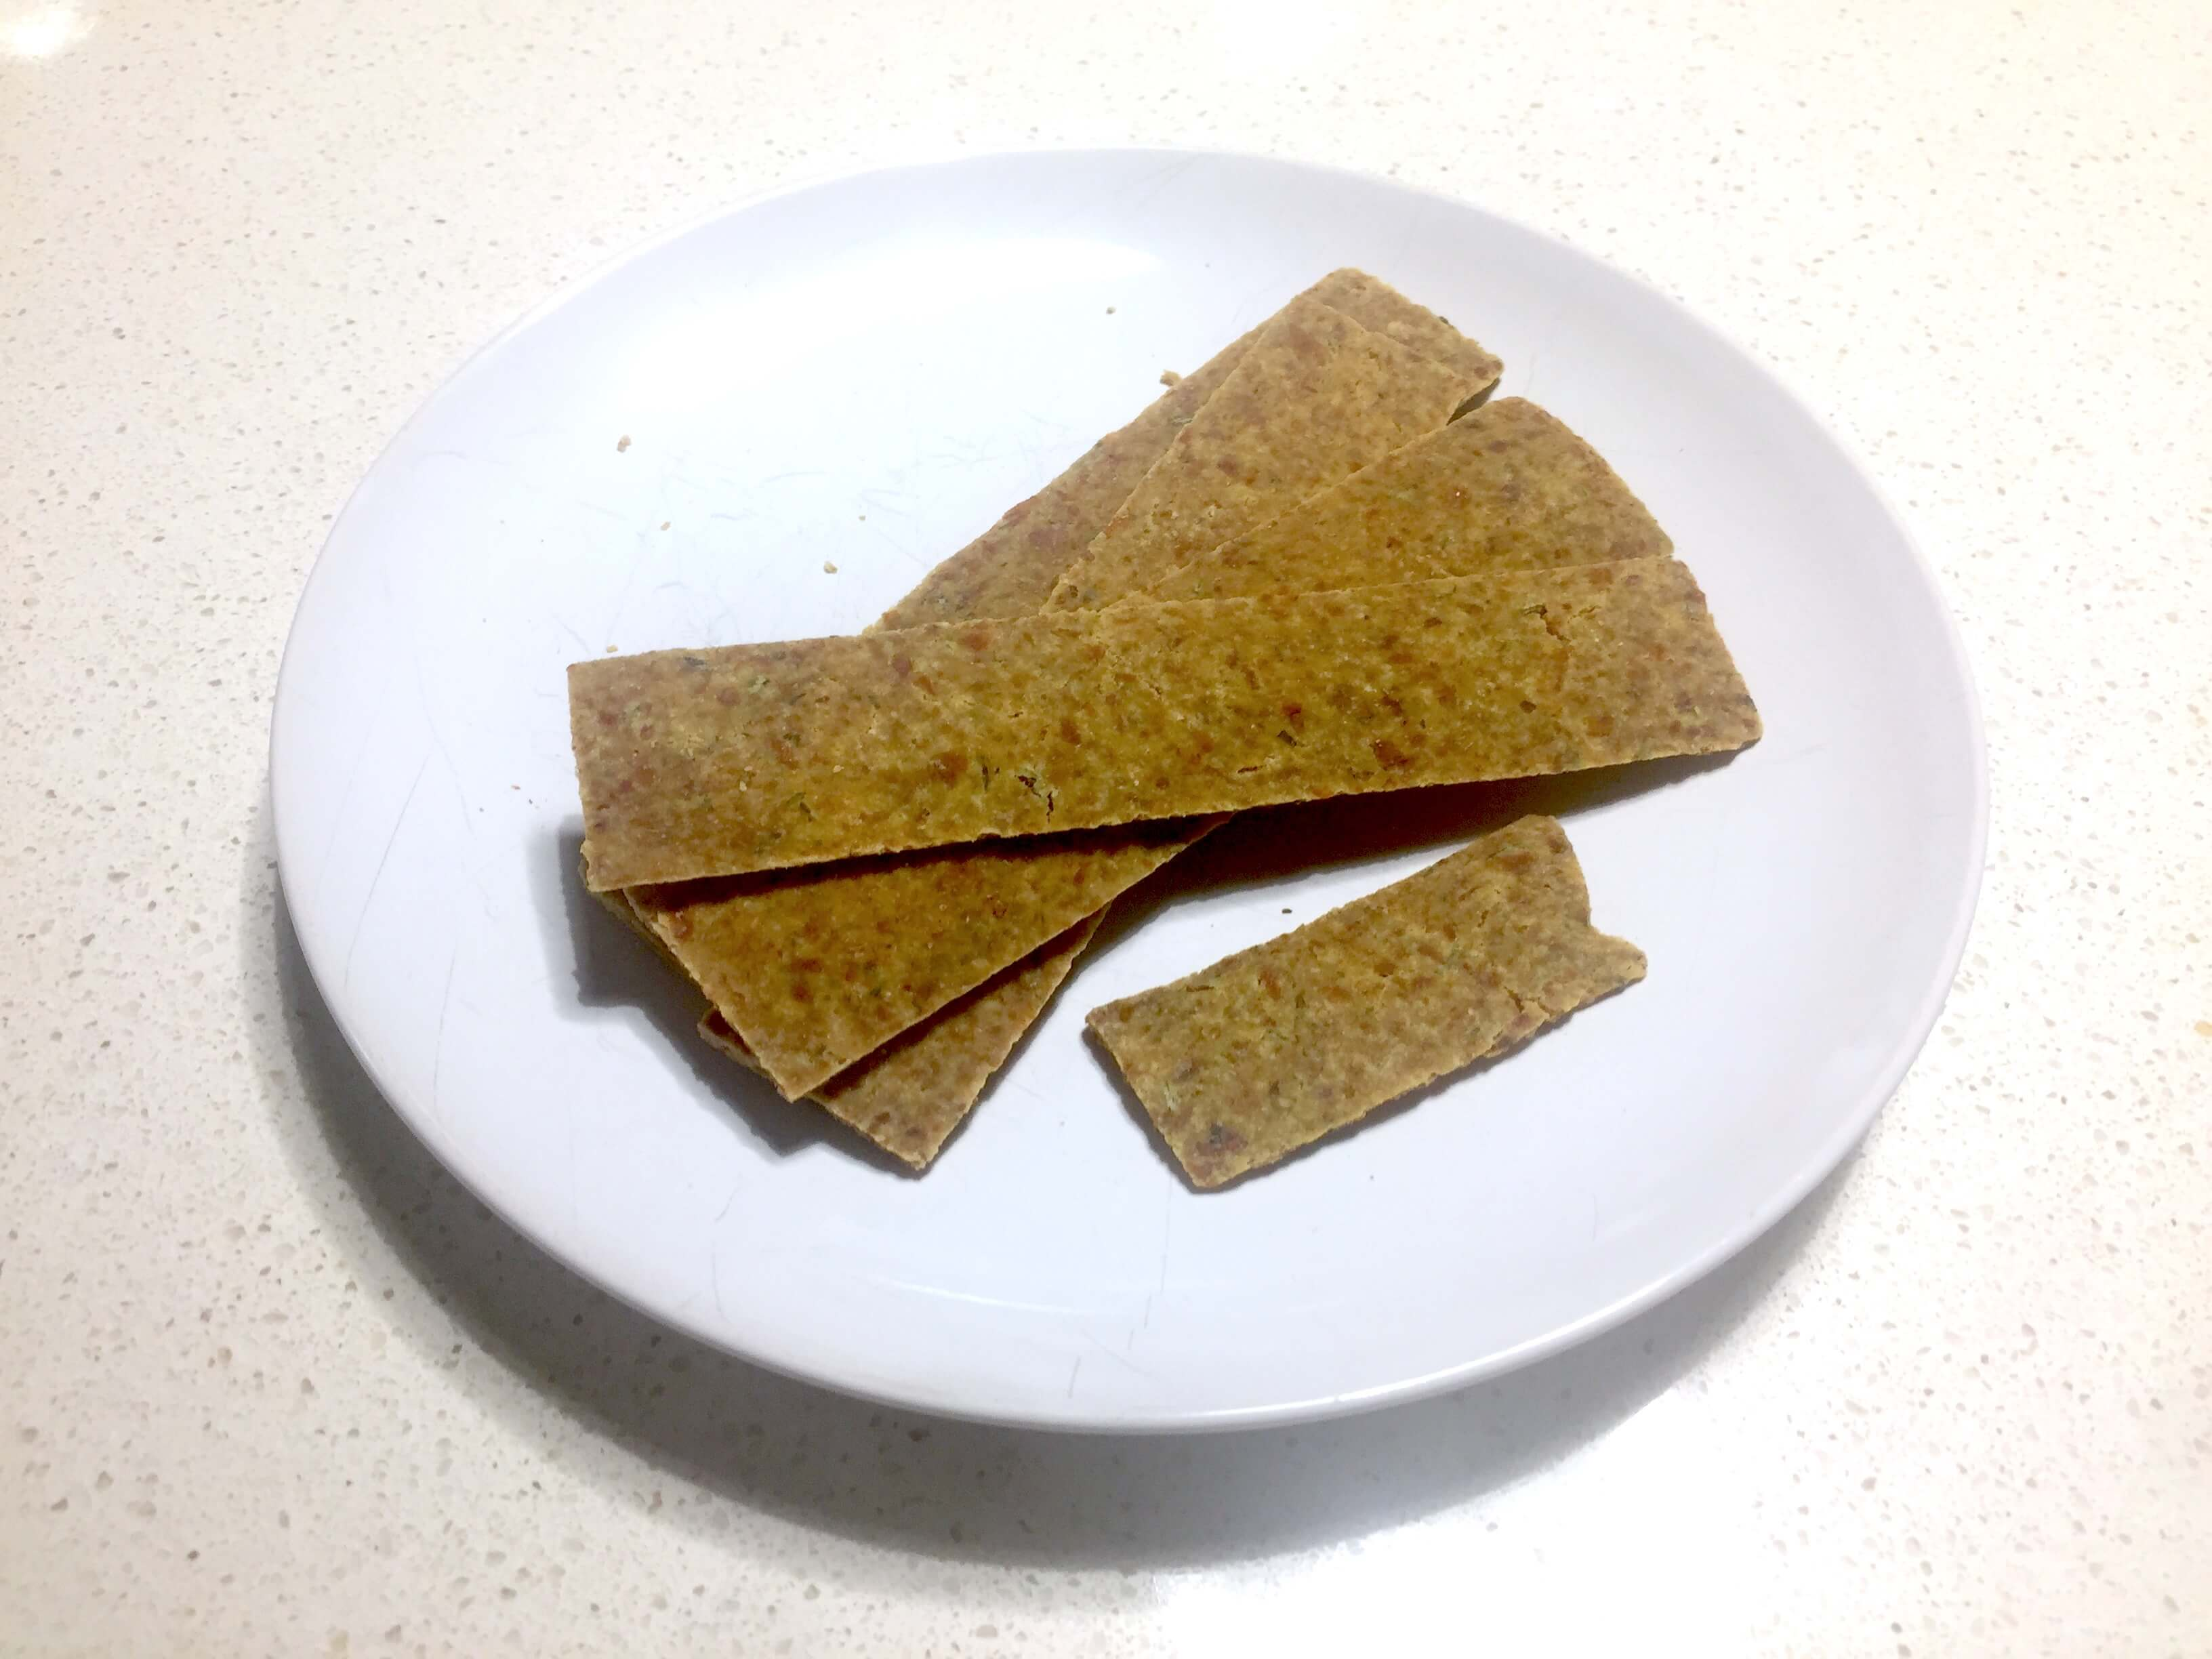 moon-juice-herb-and-cheese-crisps-120418